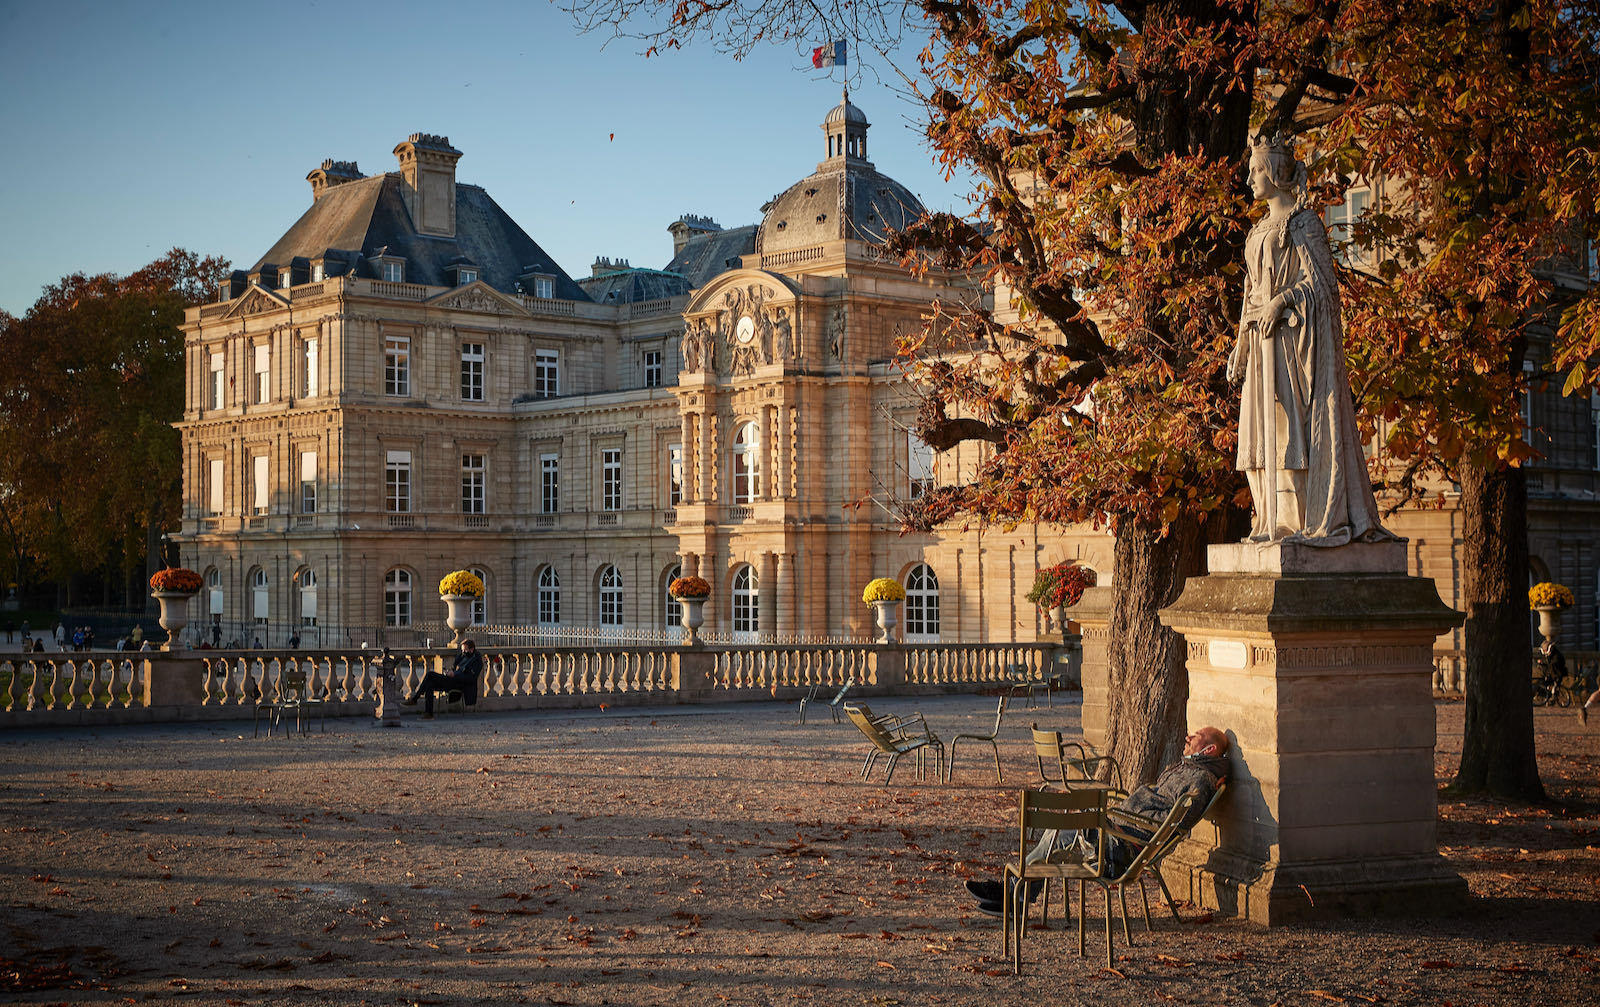 The Jardin du Luxembourg during Covid lockdown